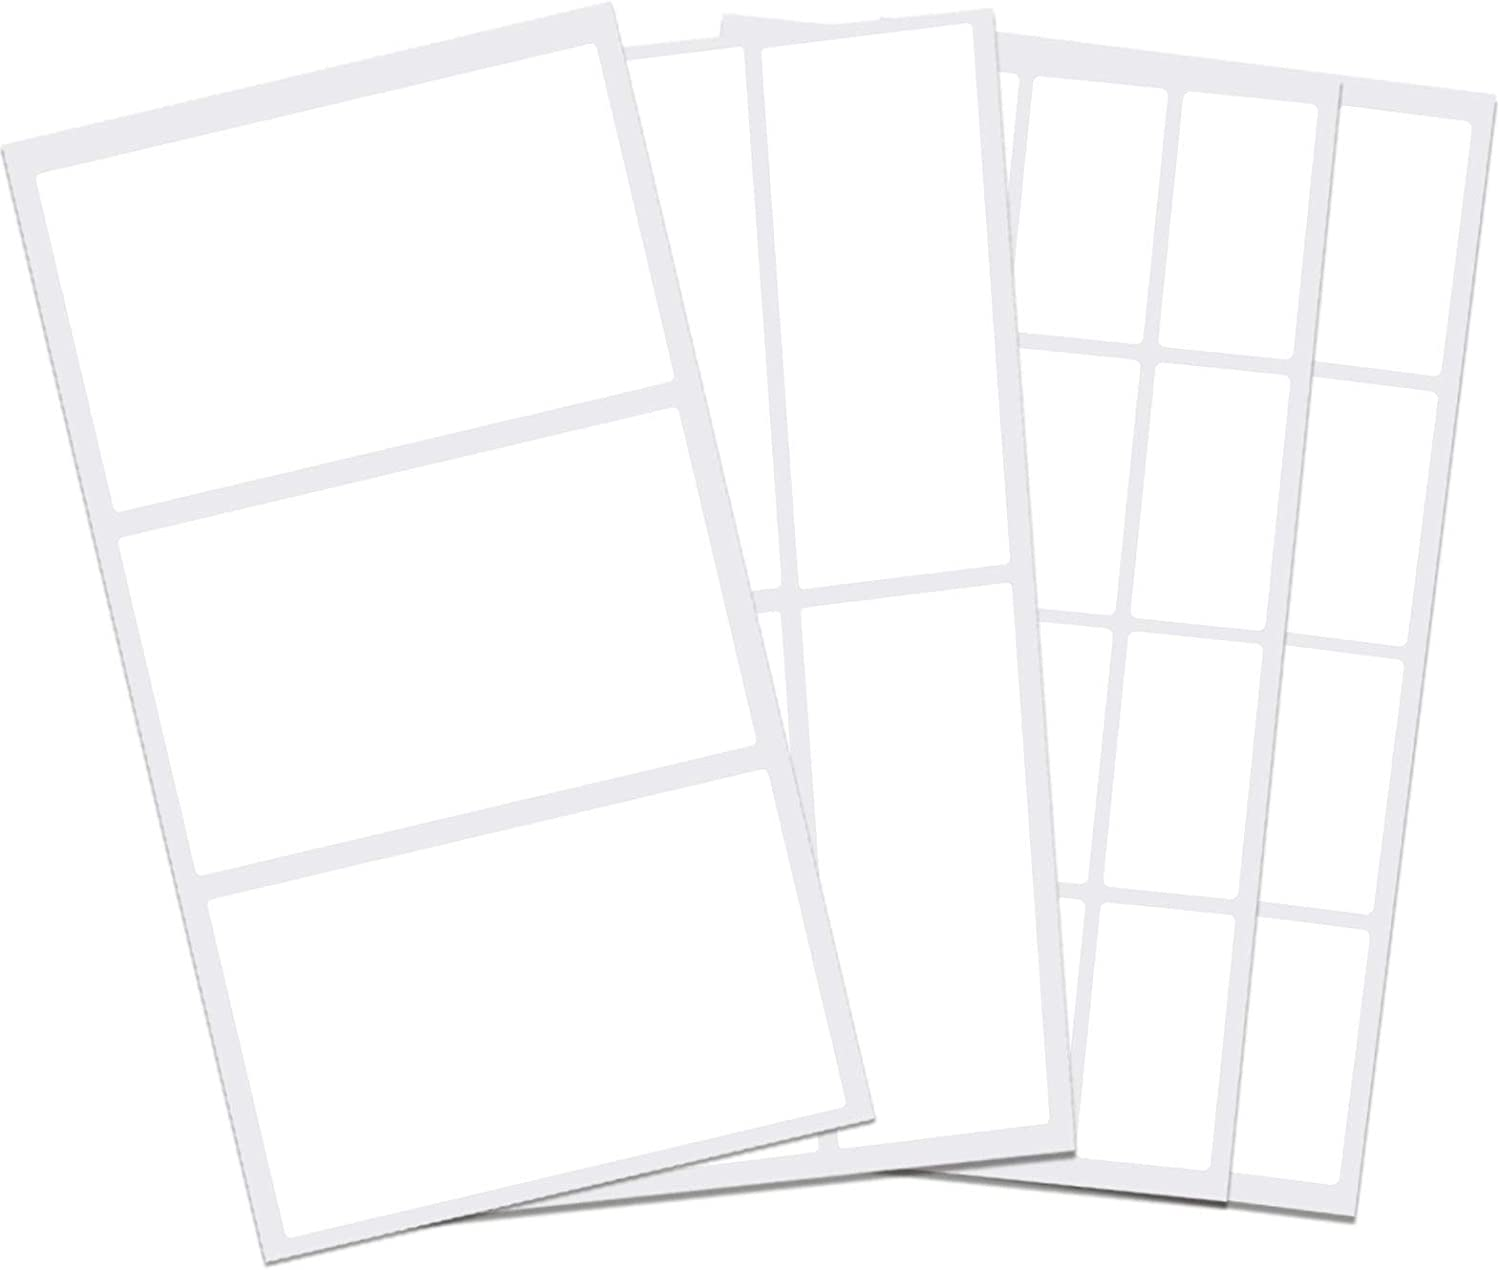 PreFeel Removable Label Stickers Waterproof Labels Practical File Folder Labels 100PCS for Food Containers White Blank Write on Name/Adress Small Labels Self-Laminating Nametags for Jars Bottles… (A)